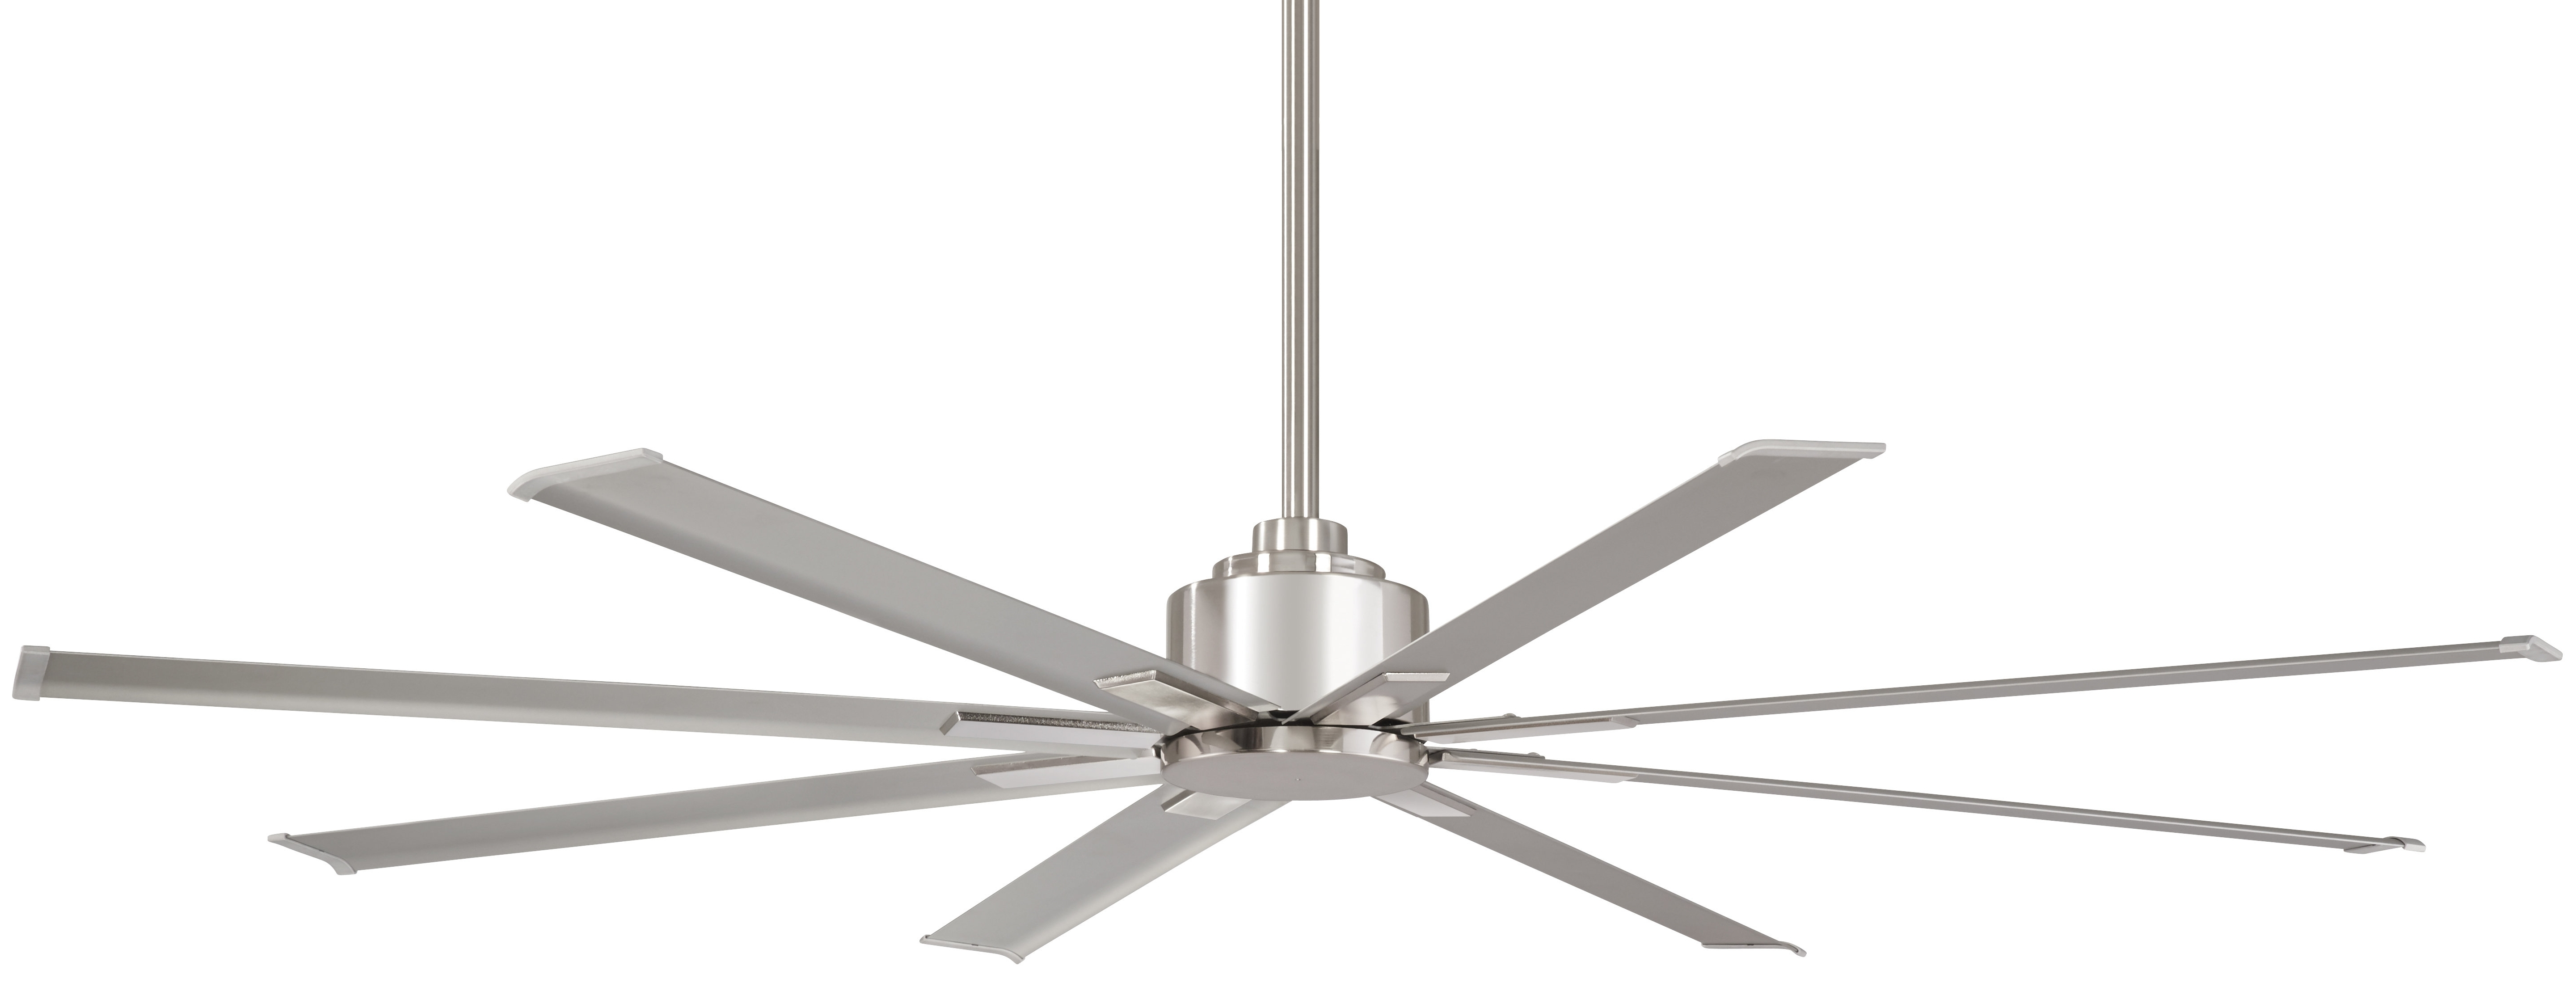 "Most Recent Minka Aire 65"" Xtreme 8 Blade Outdoor Ceiling Fan With Remote Within Outdoor Ceiling Fans With Metal Blades (View 7 of 20)"